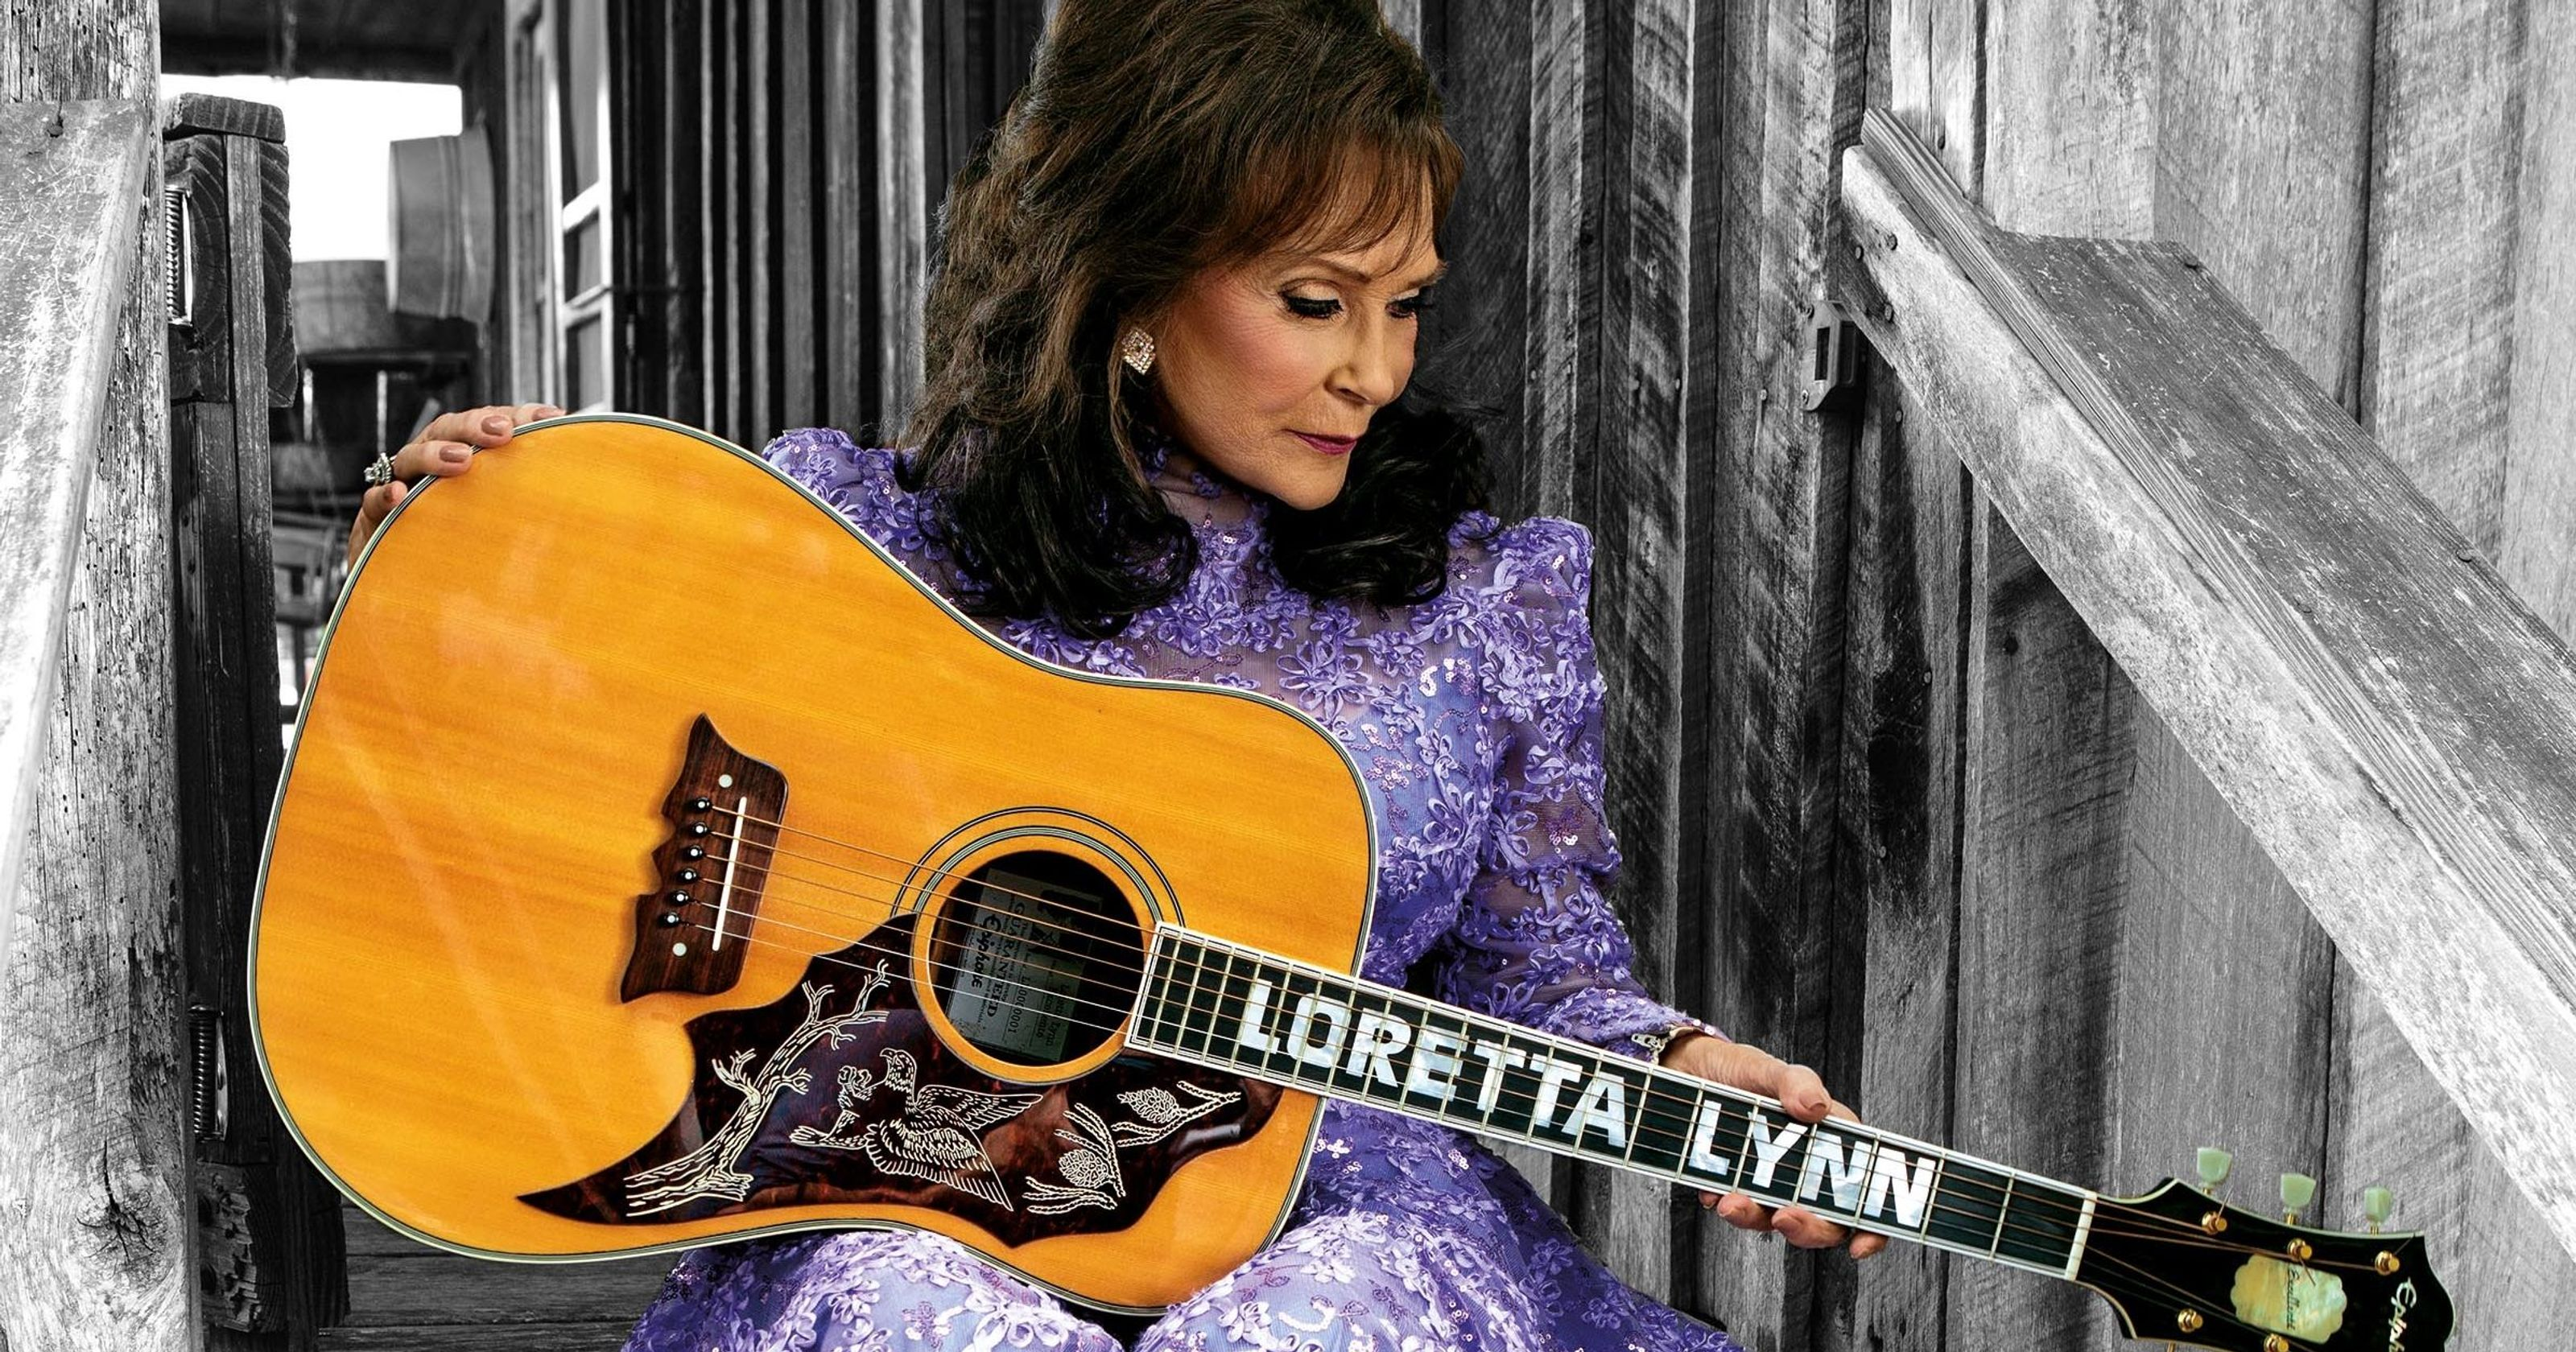 Loretta Lynn holding guitar with her name on the guitar